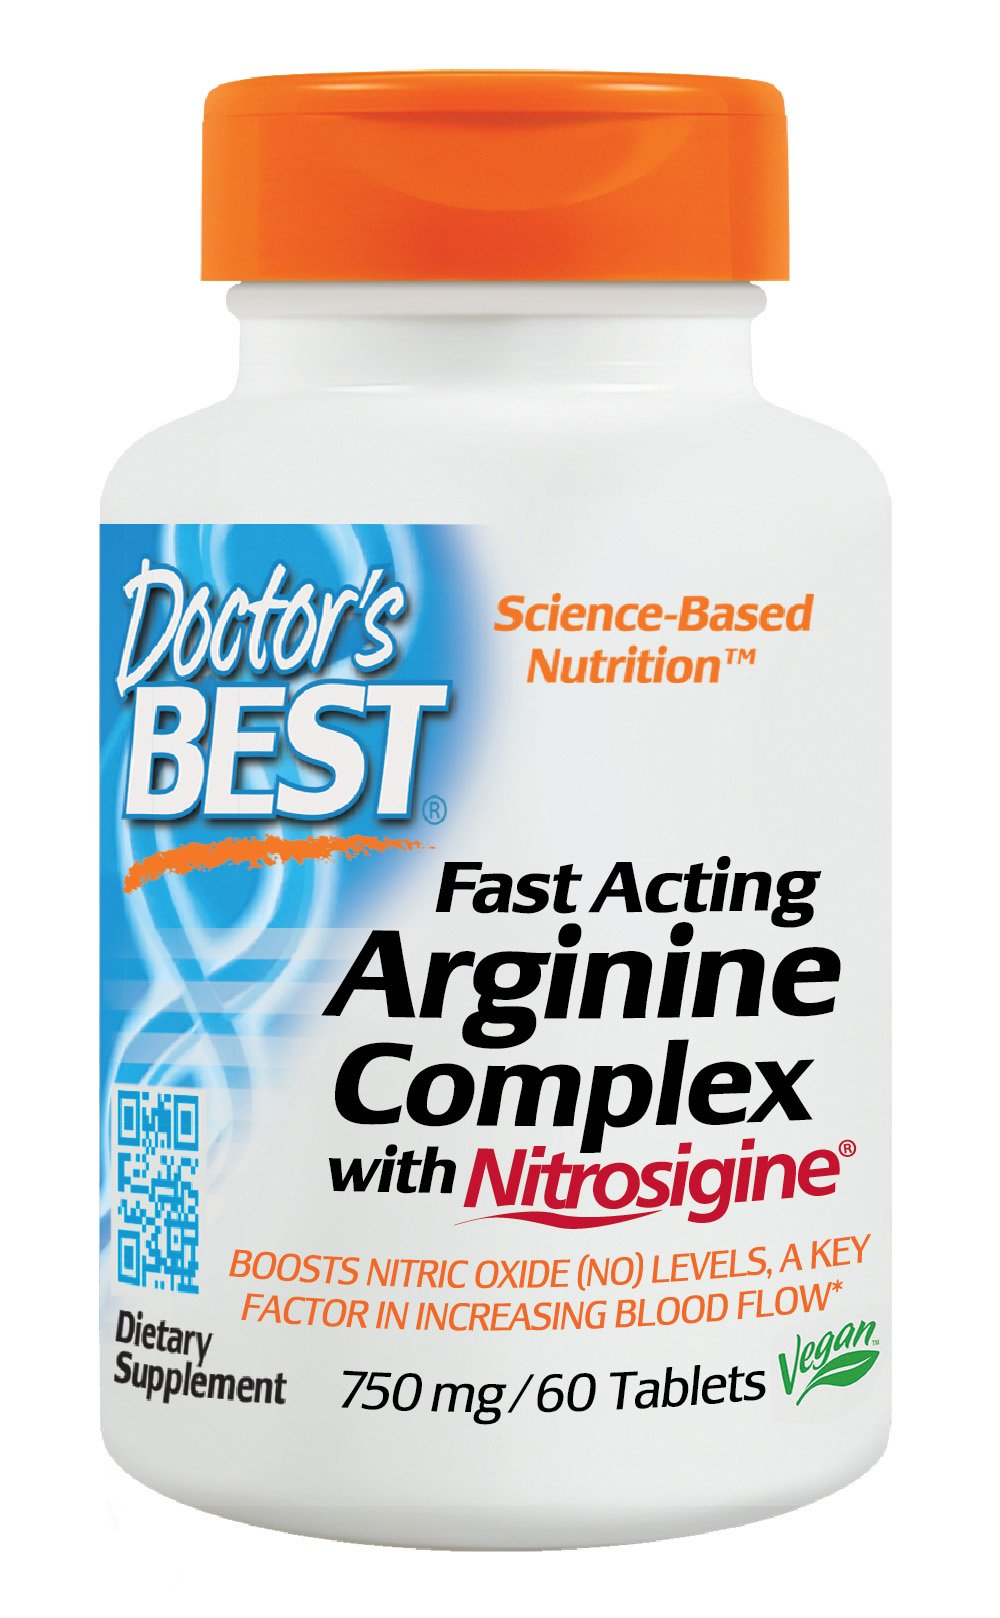 Doctor's Best Fast Acting Arginine Complex with Nitrosigine, Non-GMO, Vegan, Gluten Free, 750 mg, 60 Tablets